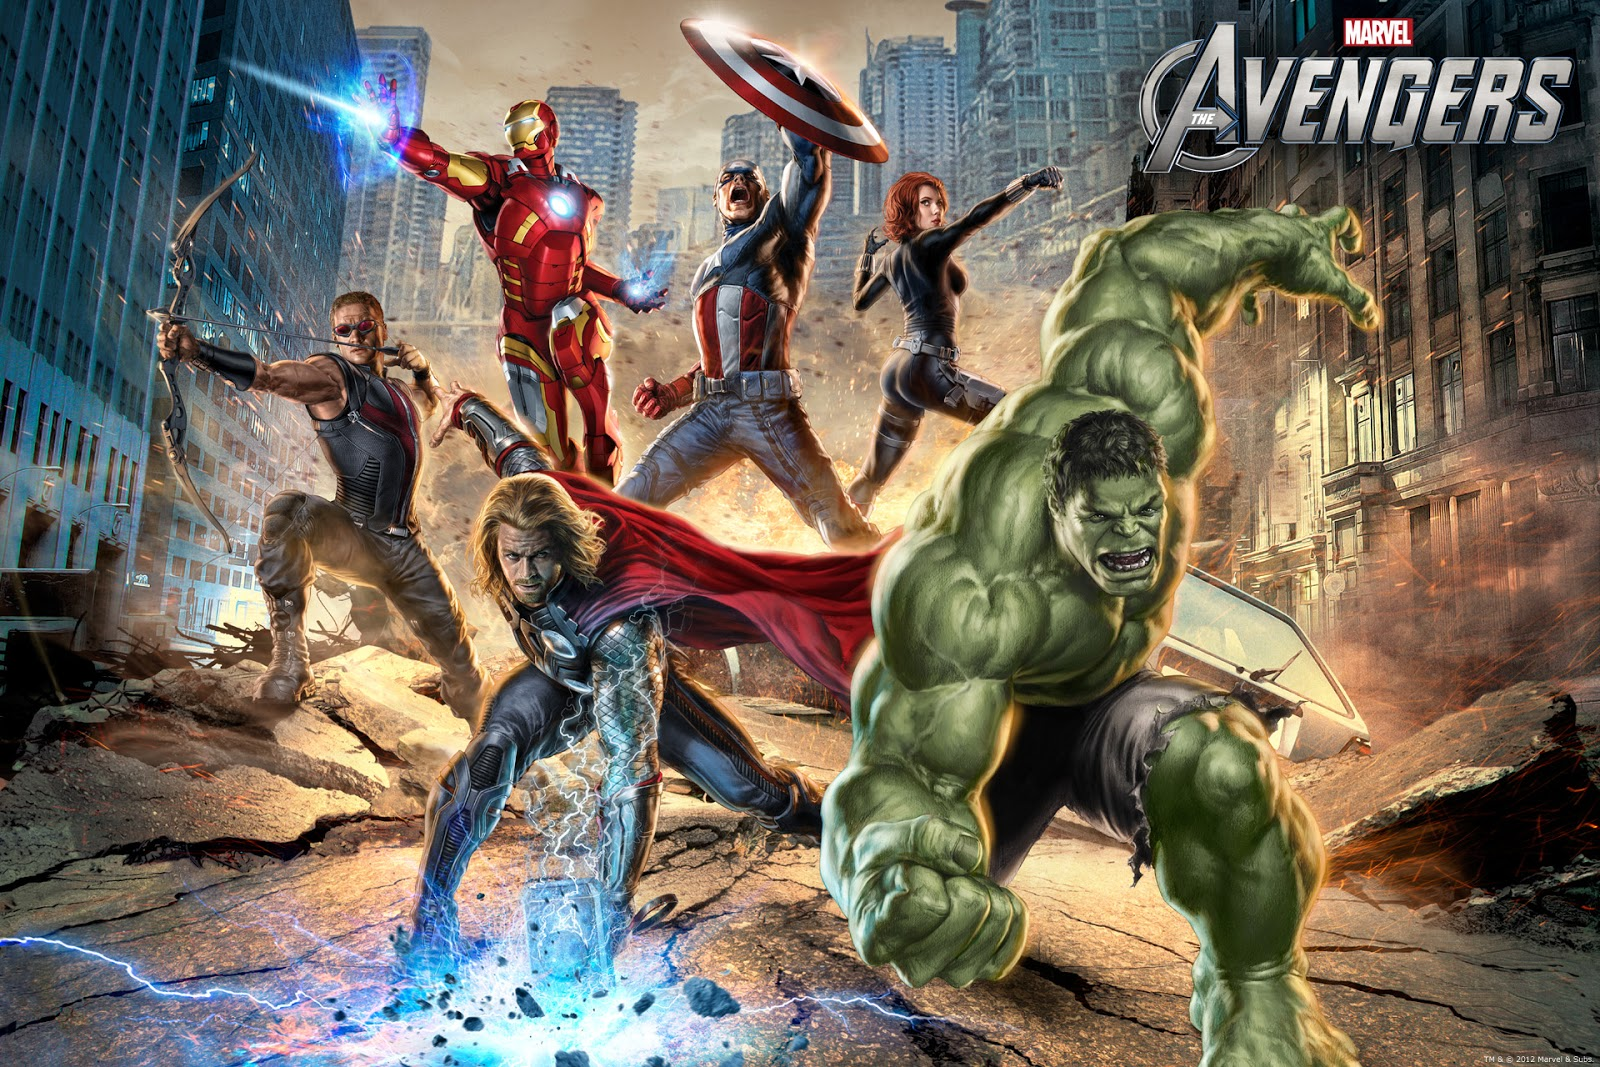 Wallpapers hd 18 wallpapers avengers full hd 1920x1200p - Fondos de pantalla 3d avengers ...